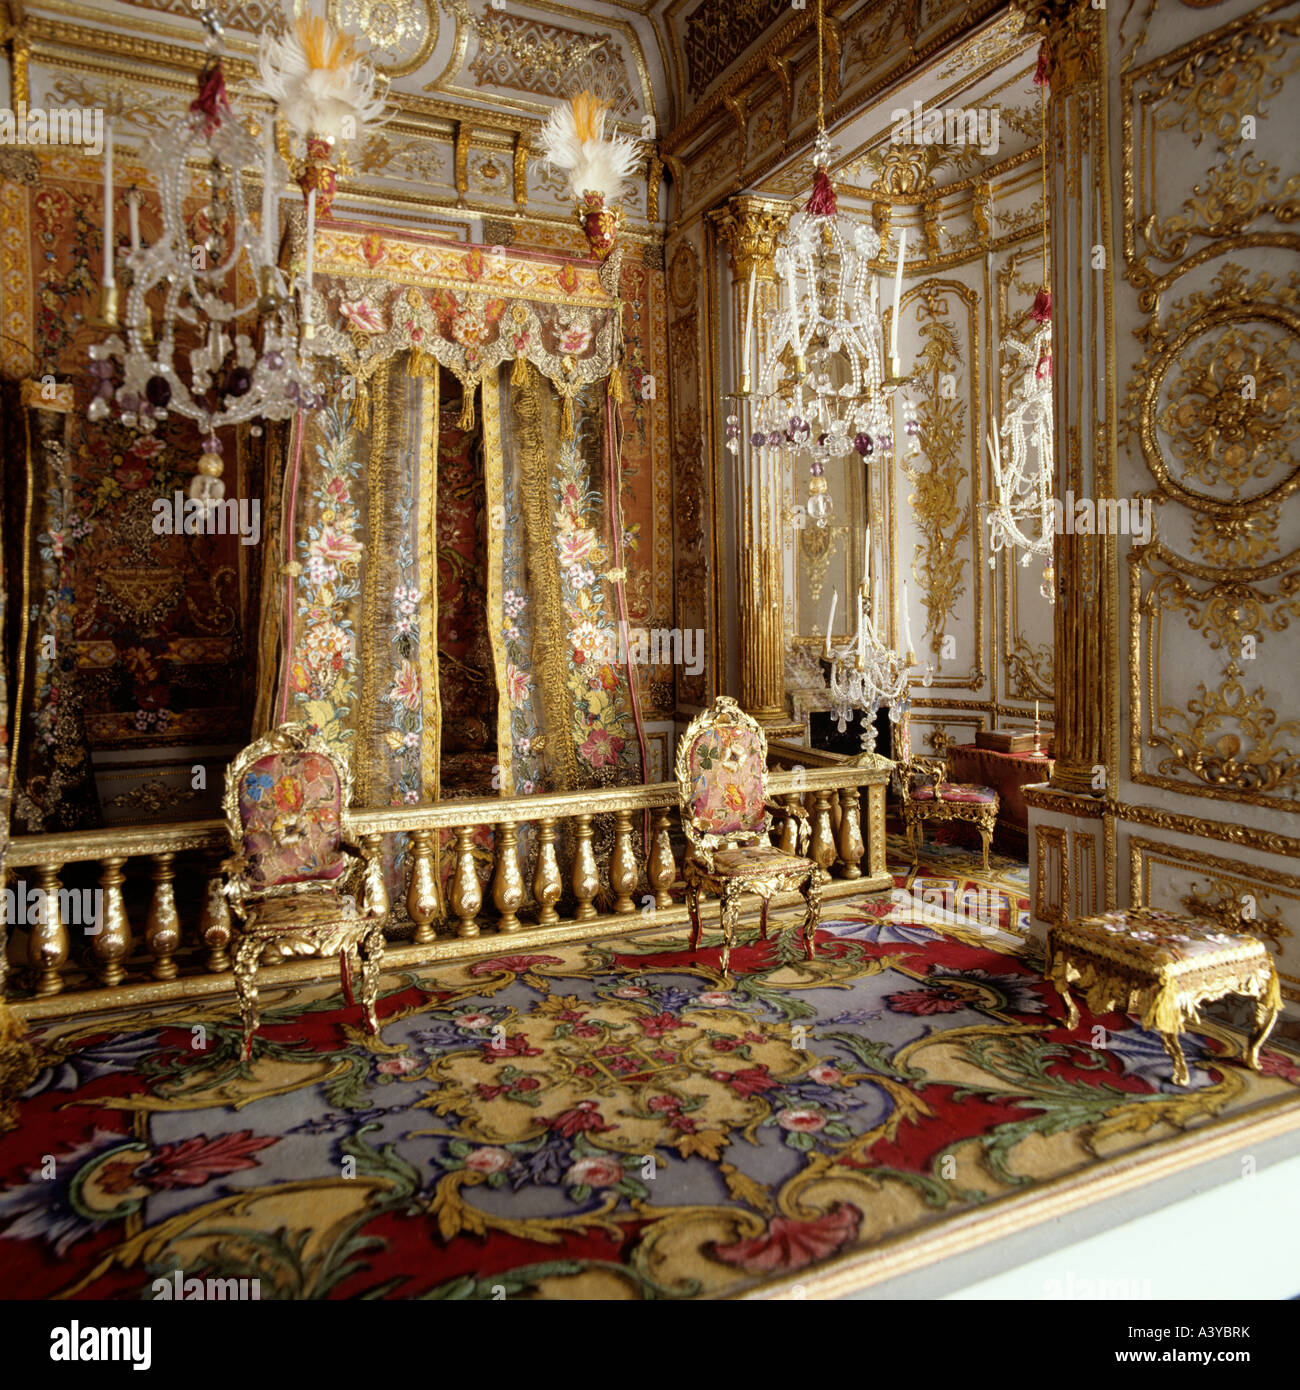 Superior Grand Hall In A Thierry Bosquet Dolls House With Interiors Inspired By  Rooms At Versailles